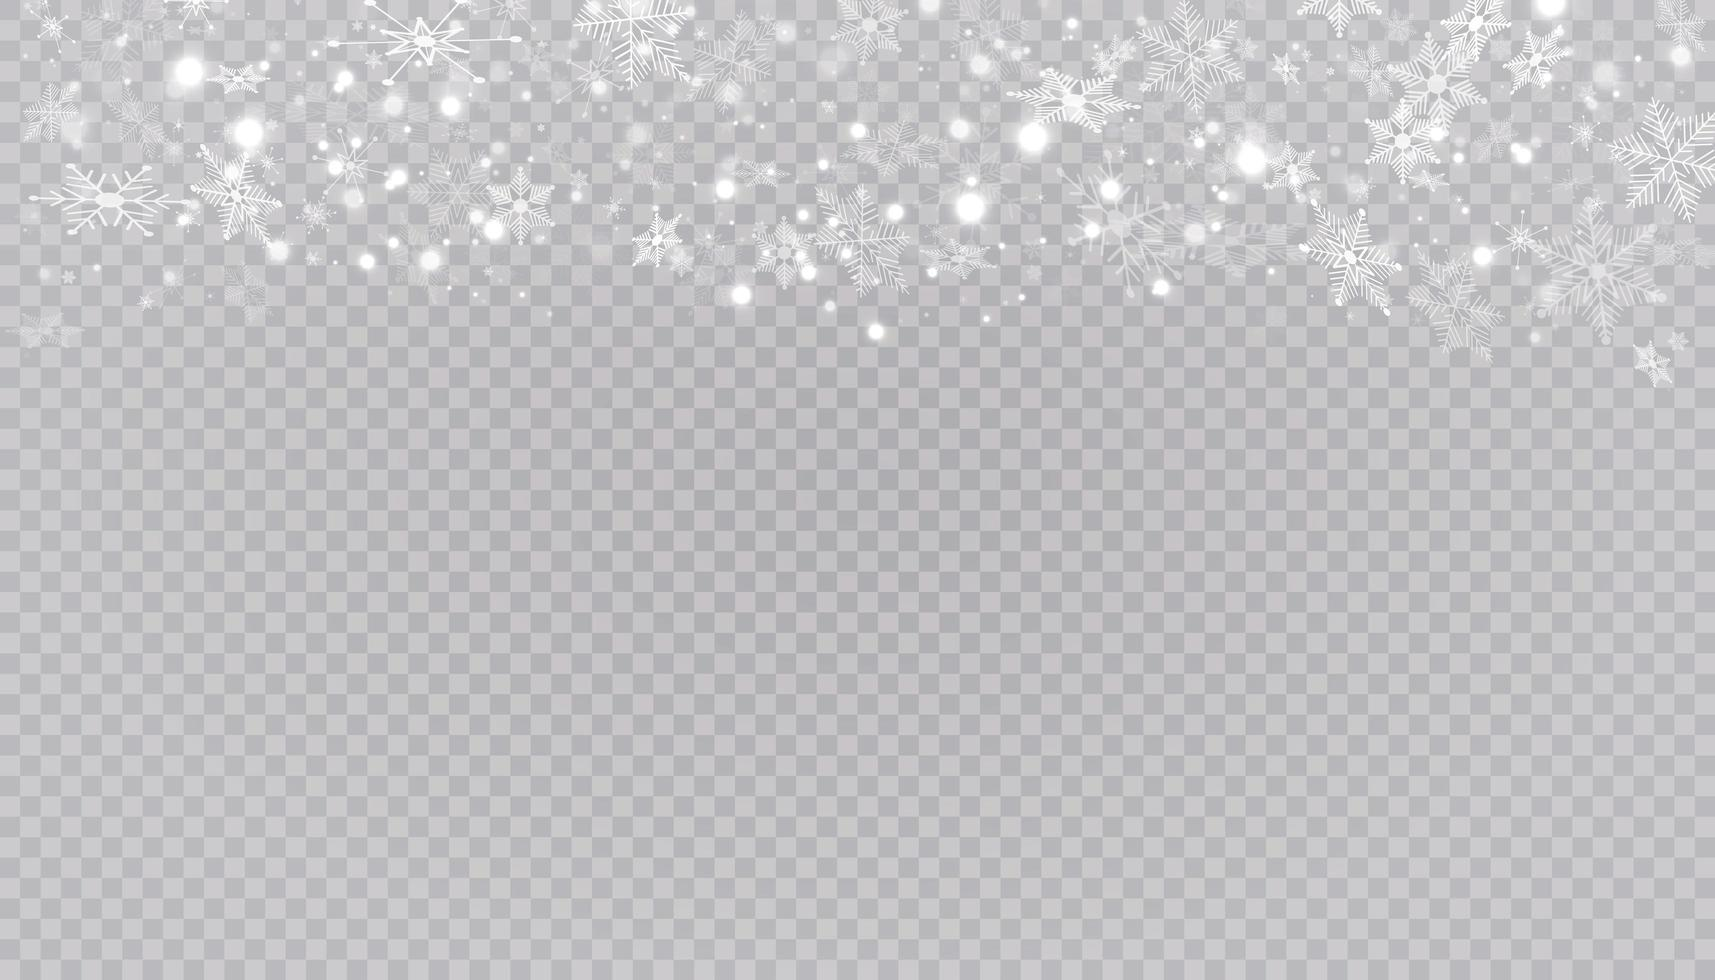 White snow flakes on background. vector